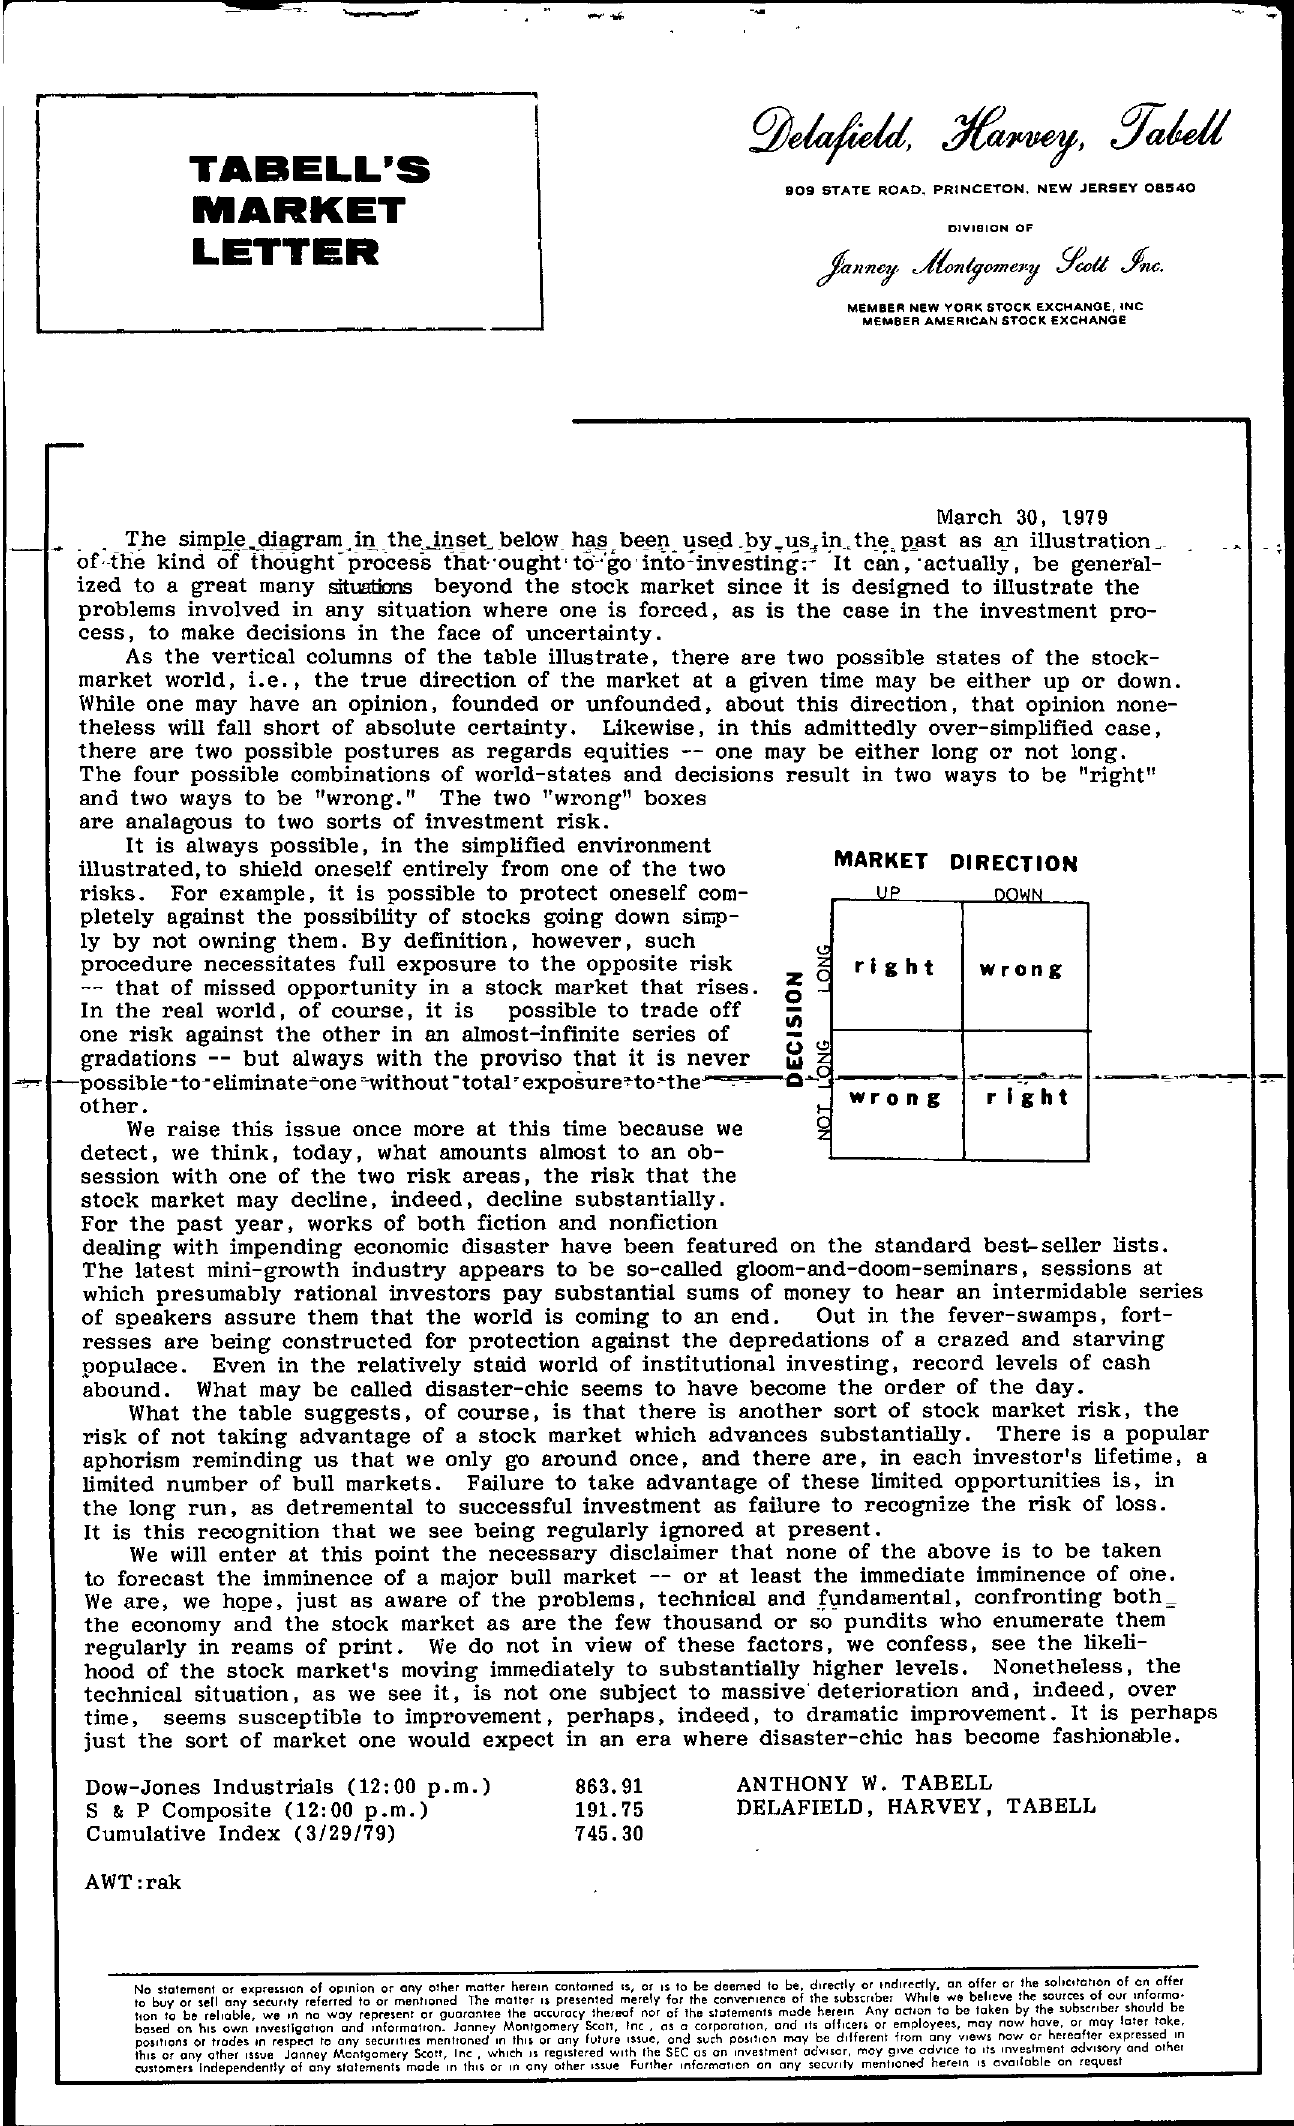 Tabell's Market Letter - March 30, 1979